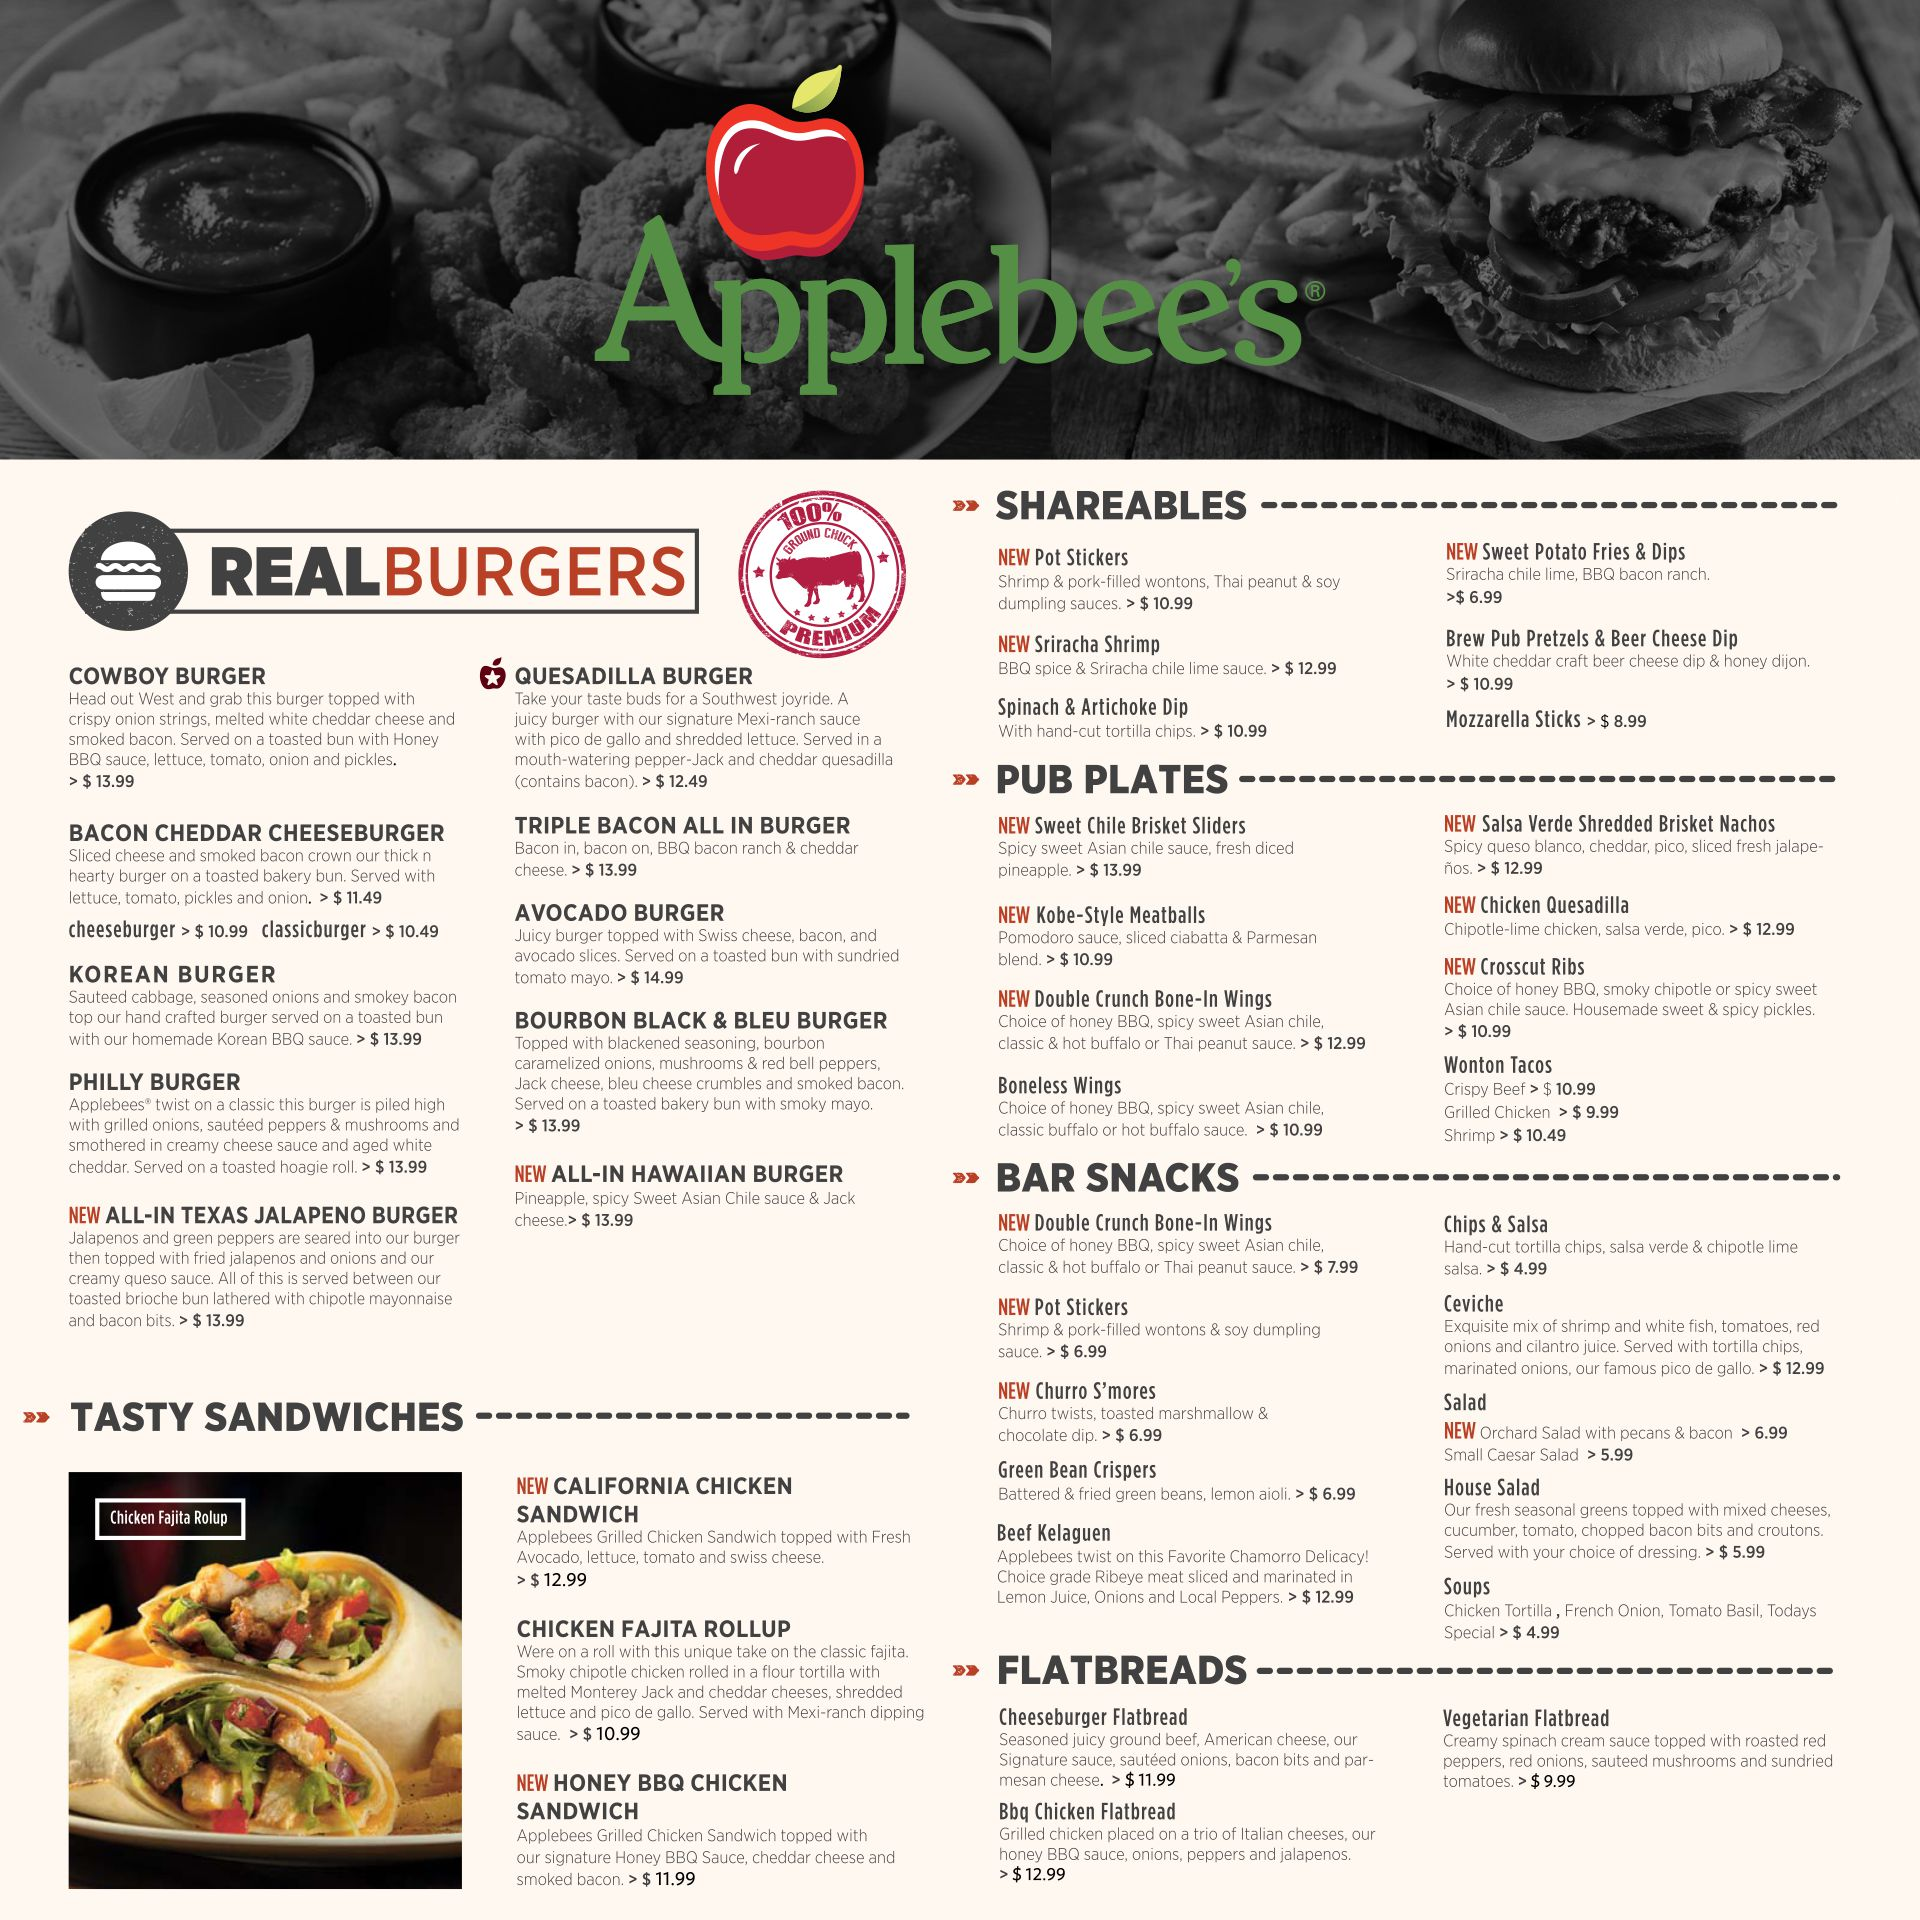 Applebee's Printable Menu with Prices